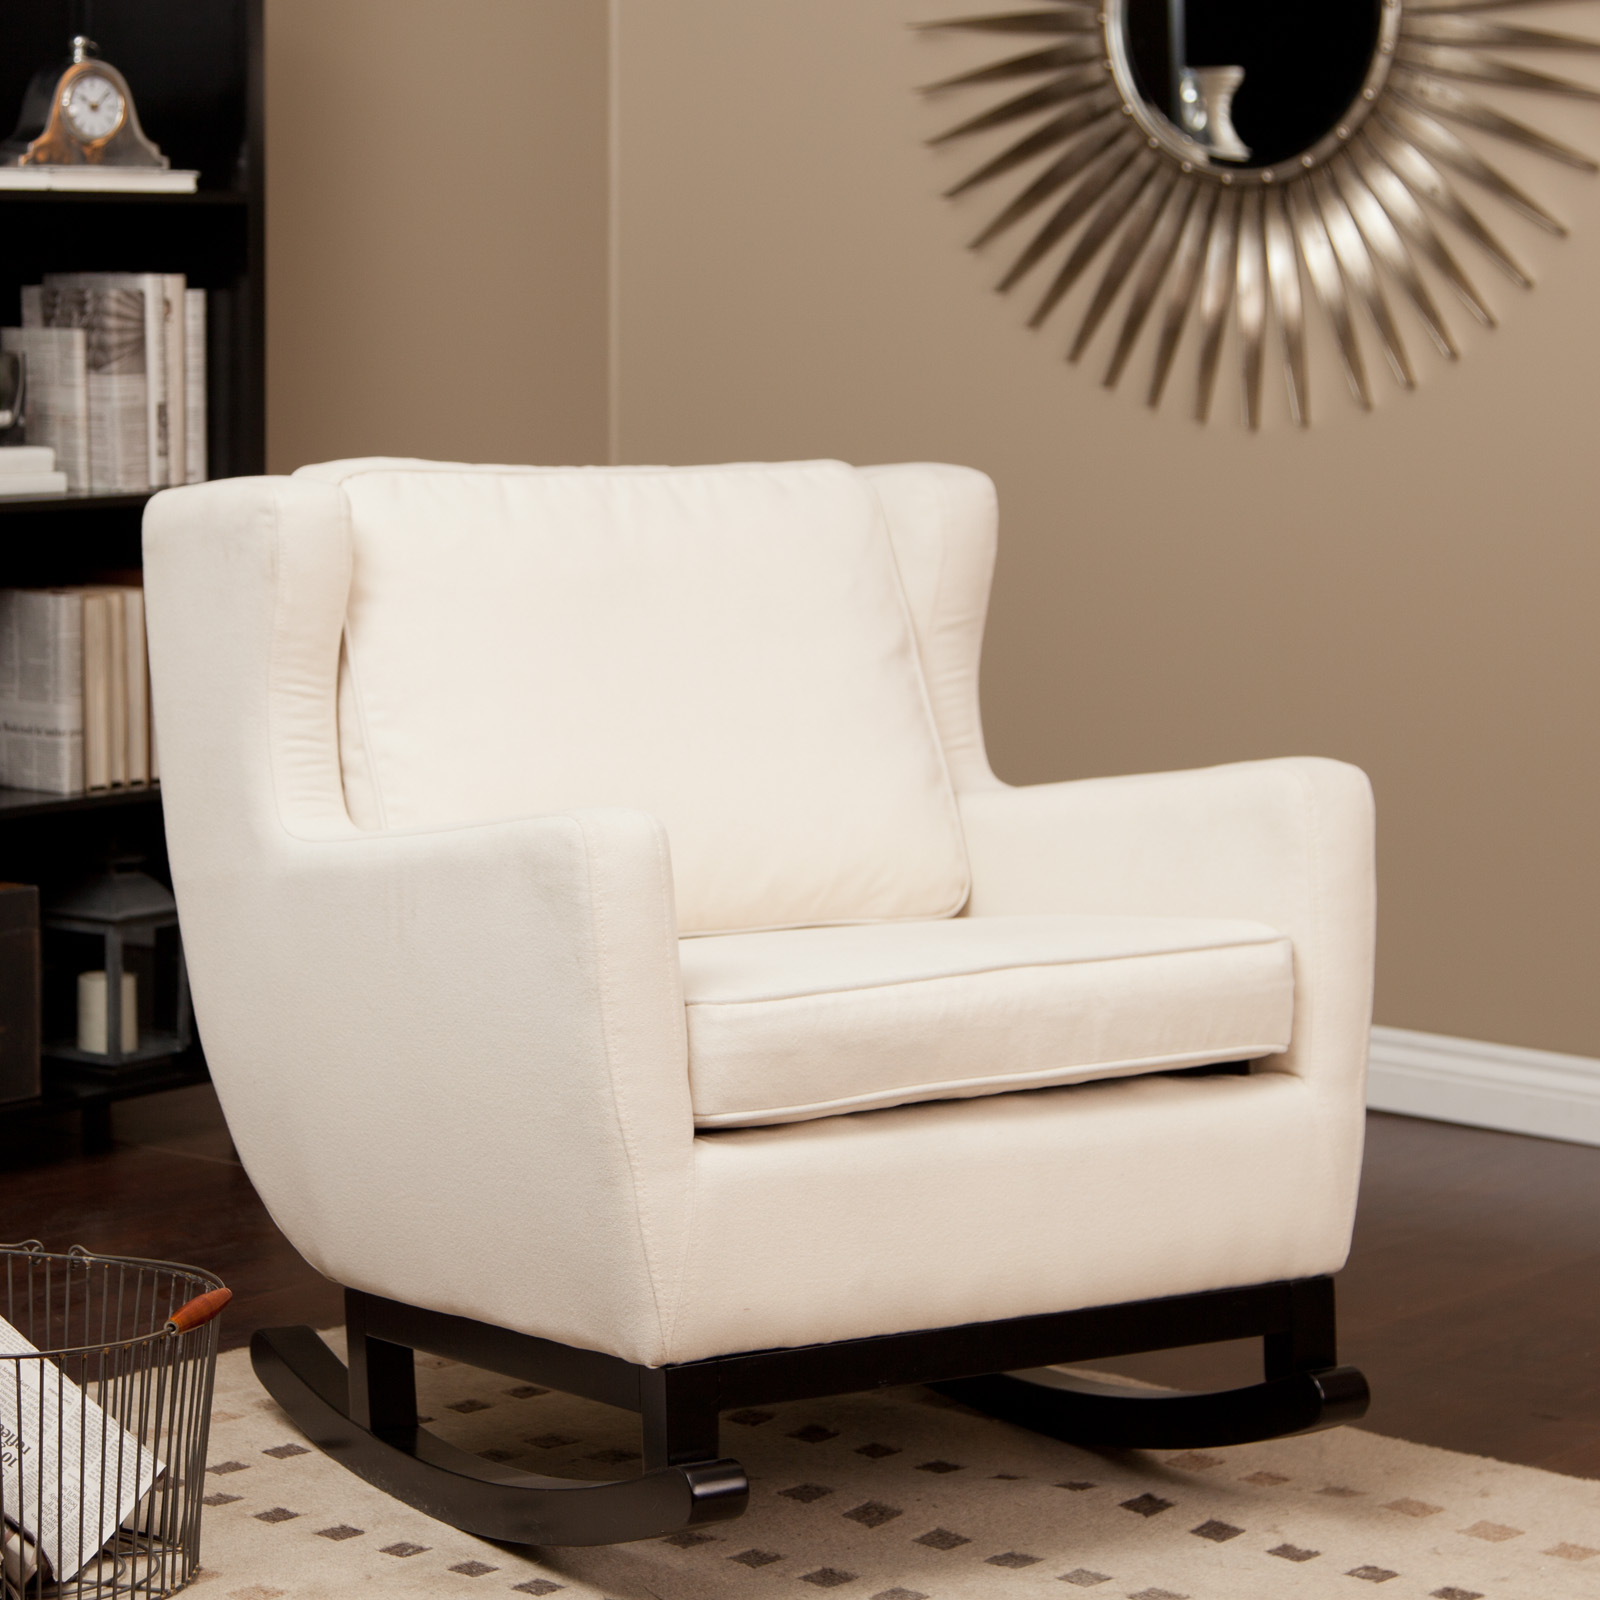 Upholstered Rocking Chair Belham Living Upholstered Rocking Chair Cream At Hayneedle